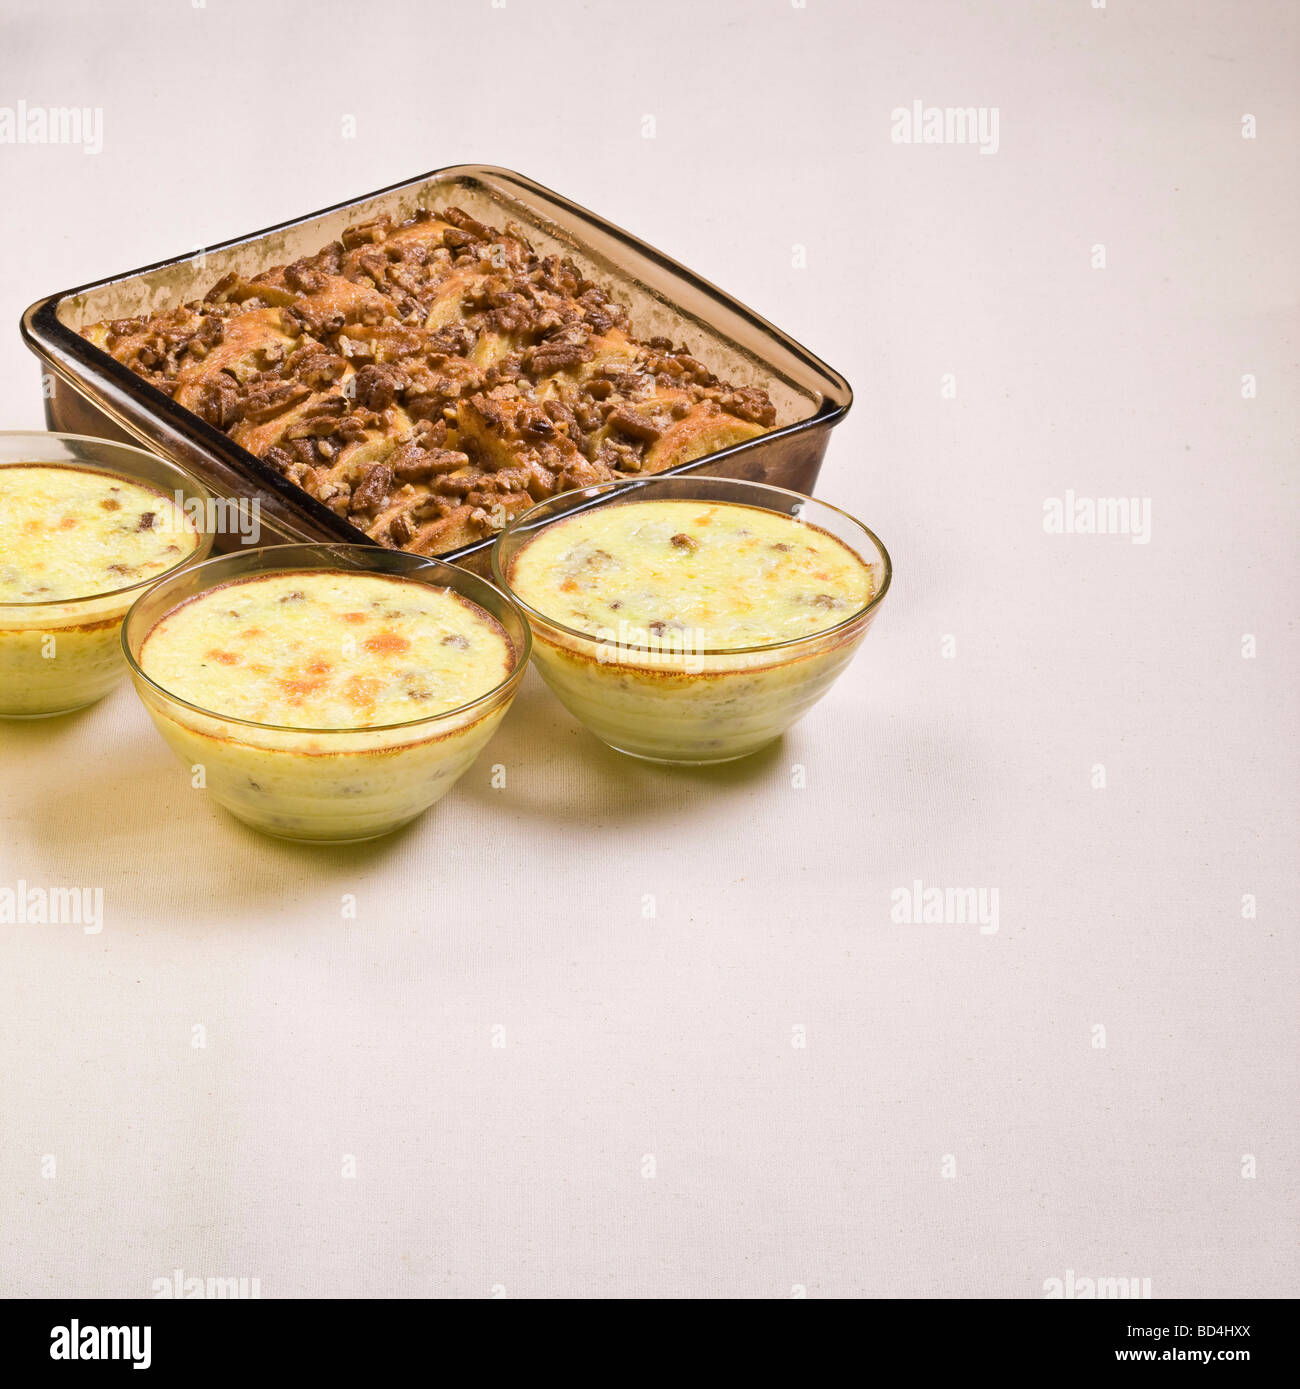 Country Kitchen Recipes Wide Awake Breakfast French Toast Casserole Sausage And Grits